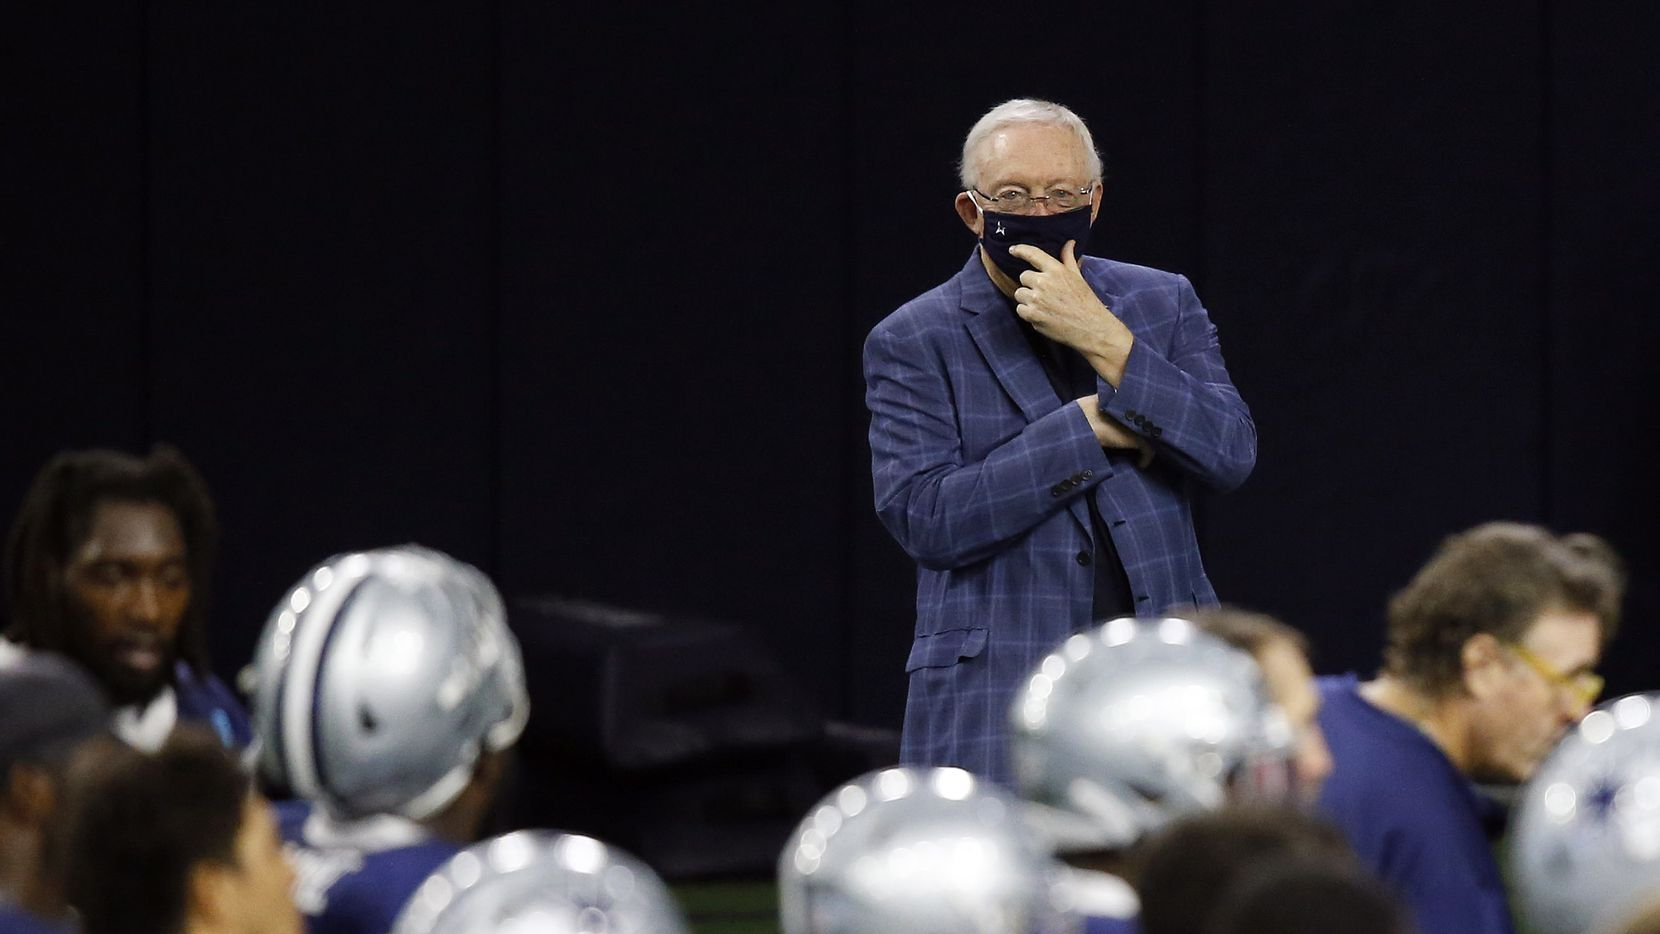 Dallas Cowboys owner and general manager Jerry Jones watches practice from the sidelines during training camp at the Dallas Cowboys headquarters at The Star in Frisco, Texas on Tuesday, August 25, 2020.